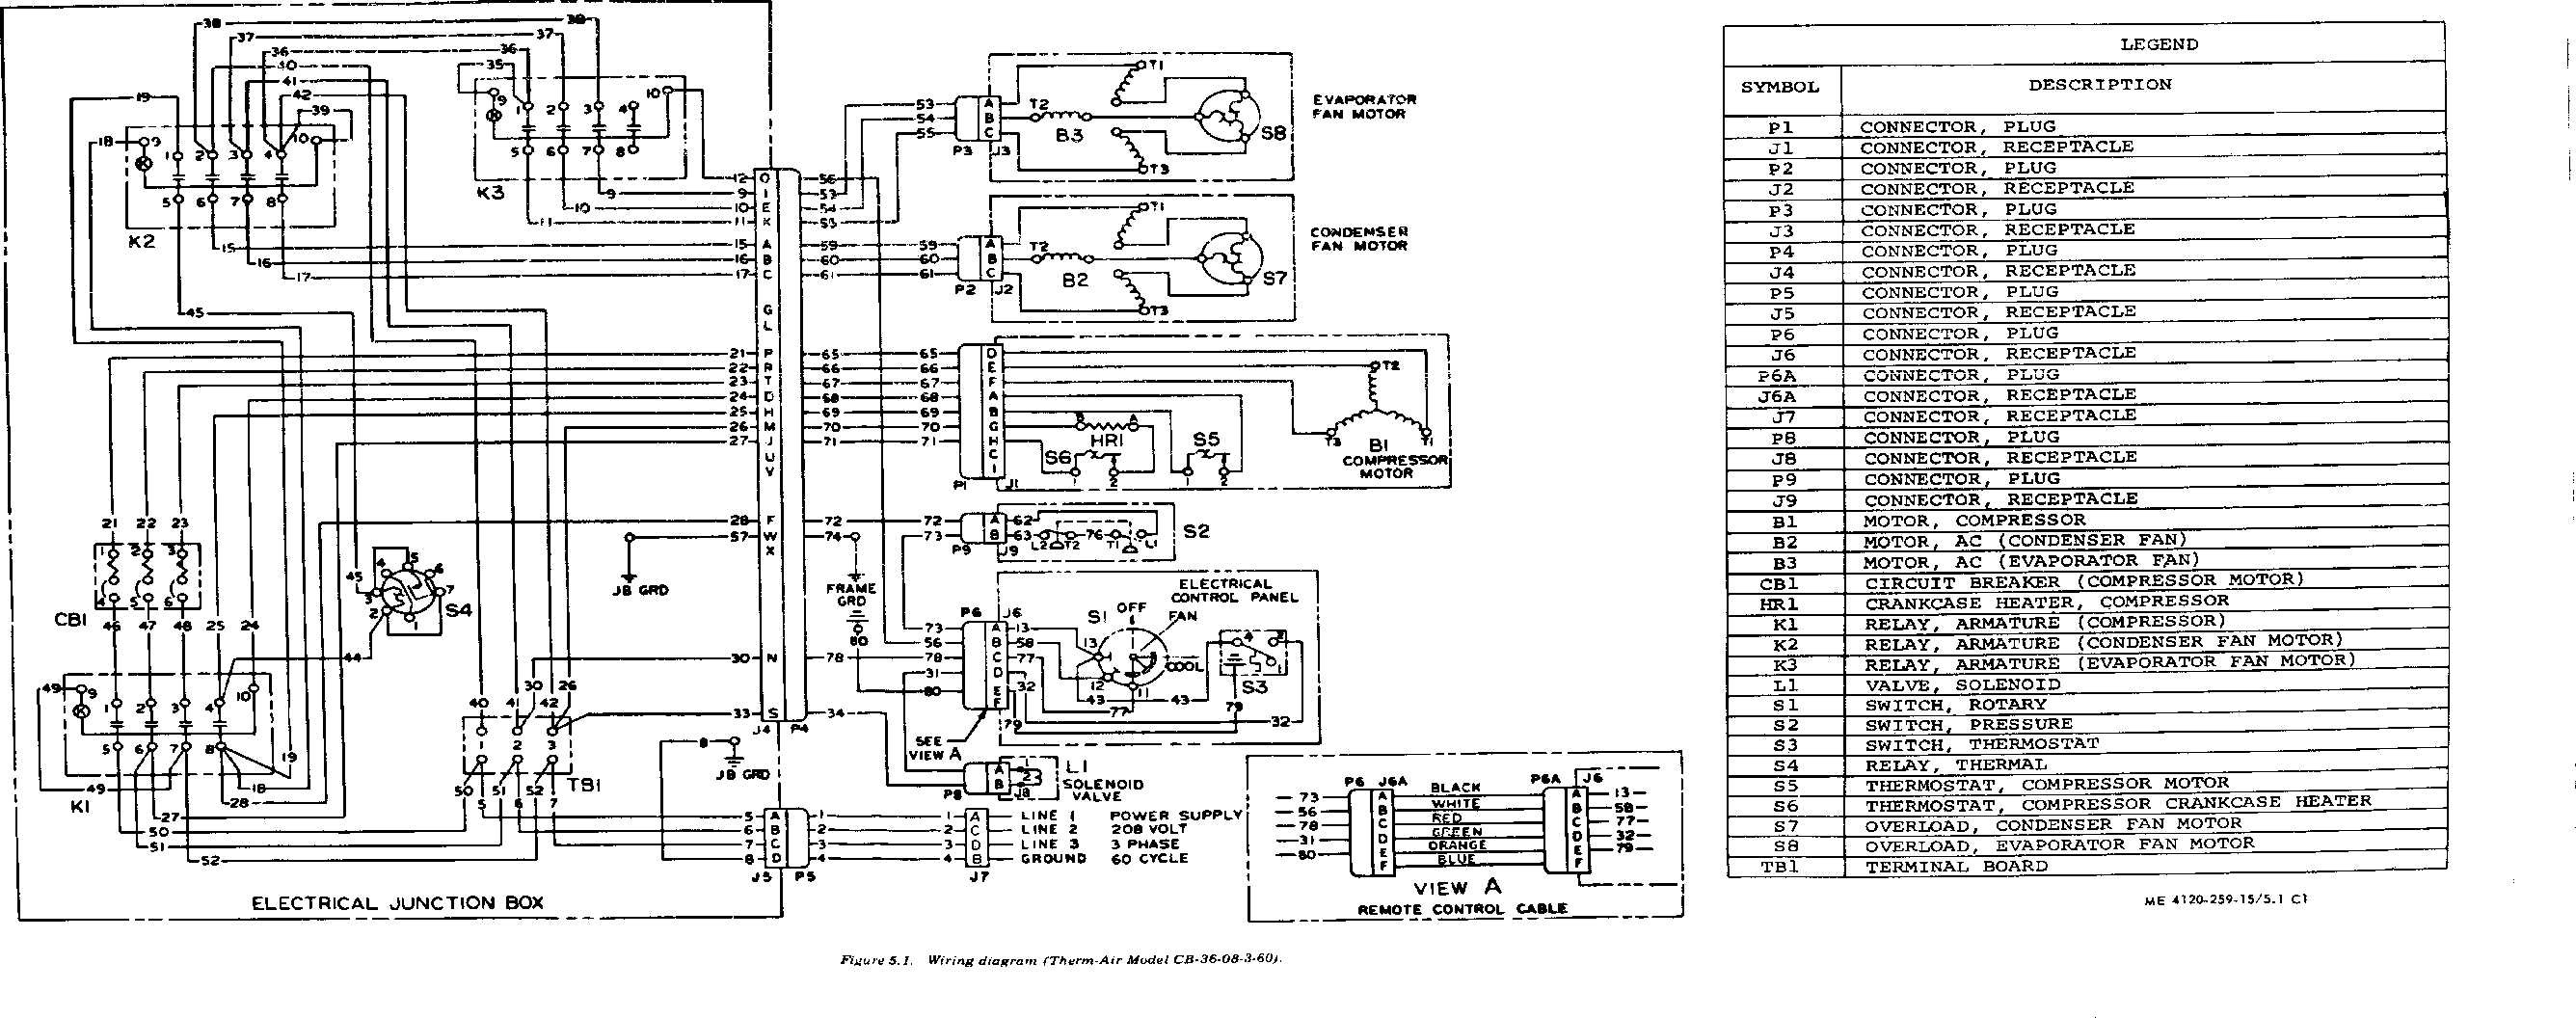 Wiring Diagram Trane Gas Furnace from wholefoodsonabudget.com